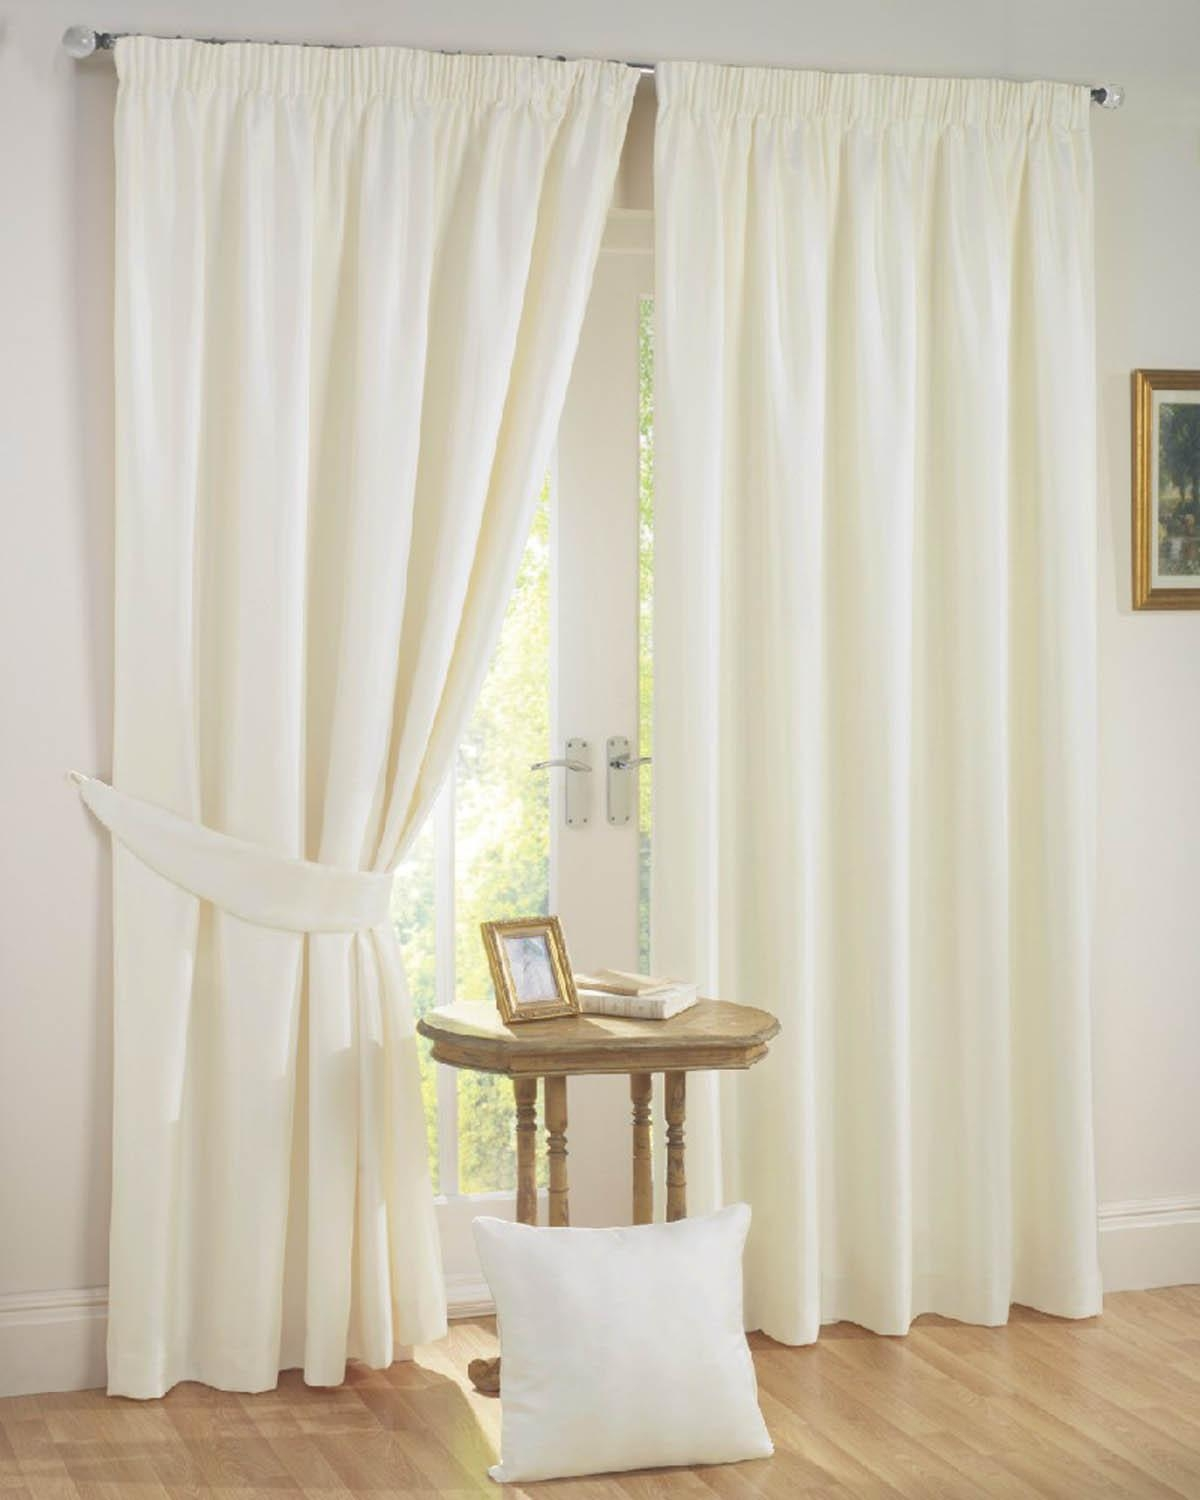 Sunset Ready Made Curtains Cream Free Uk Delivery Terrys Fabrics With Plain White Blackout Curtains (Image 14 of 15)